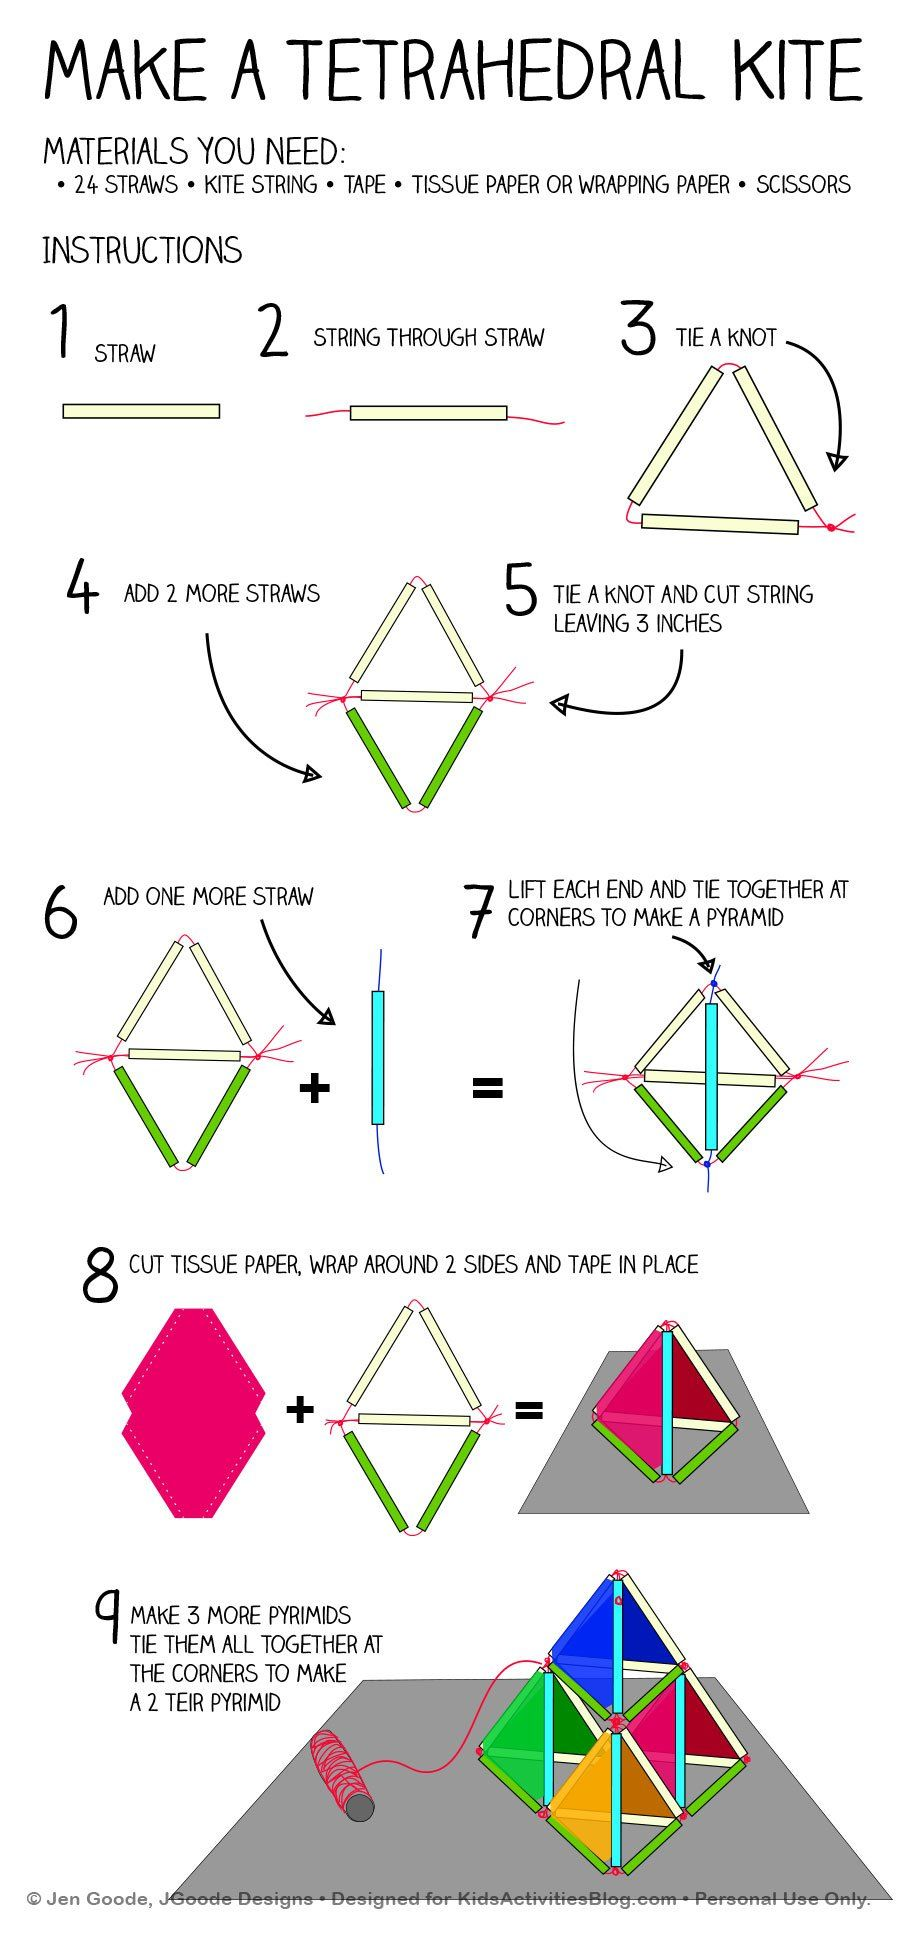 Easy Kitemaking: How to Build a Pyramid Kite | How to build, Kites ...